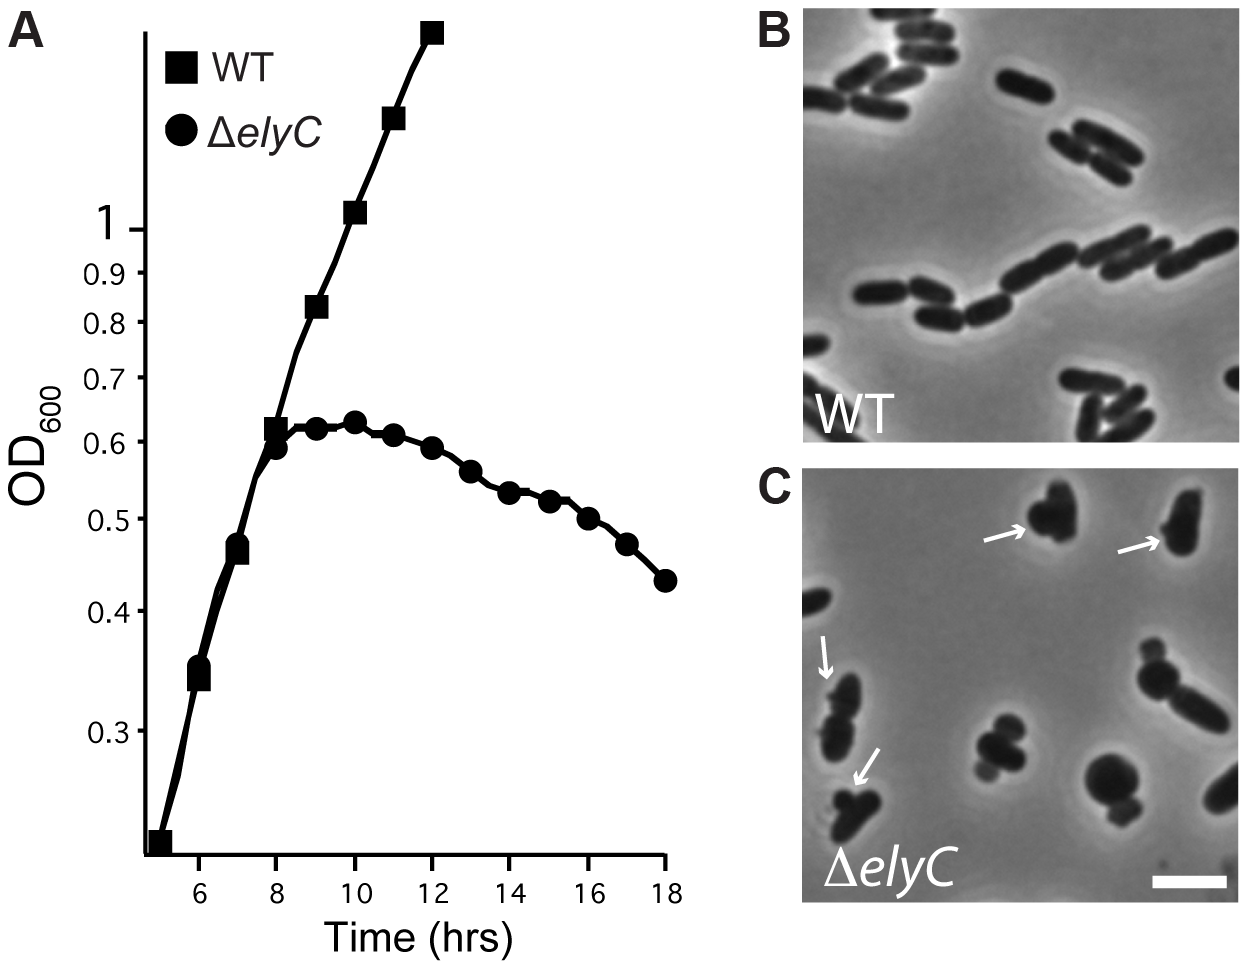 Loss of ElyC function results in lysis.